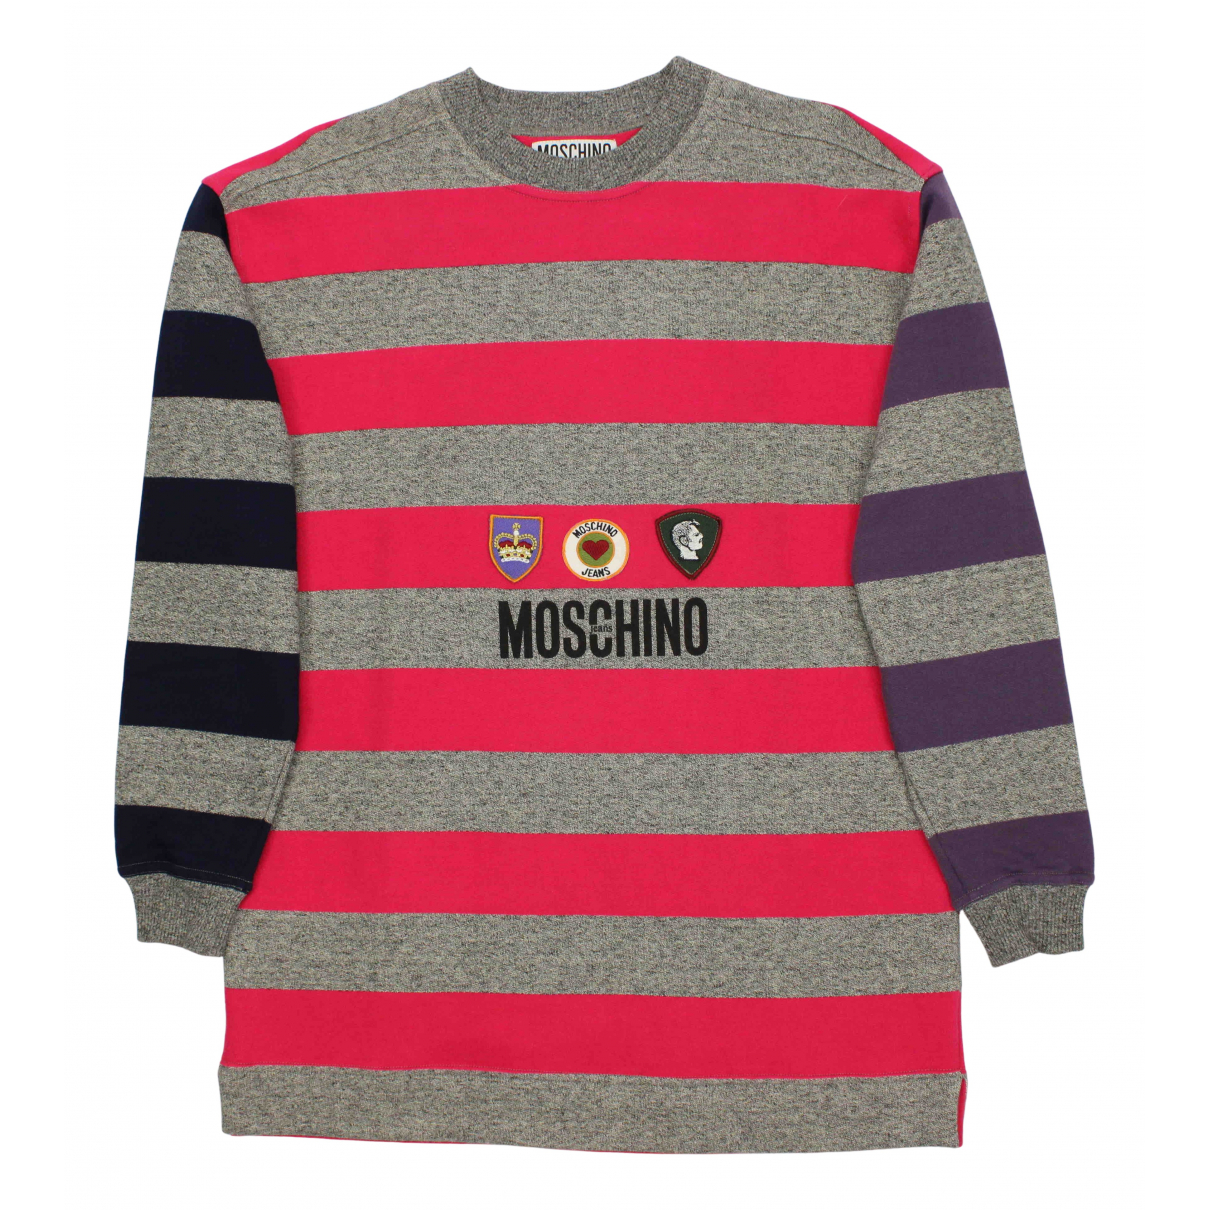 Moschino Cheap And Chic - Pull   pour femme en coton - multicolore